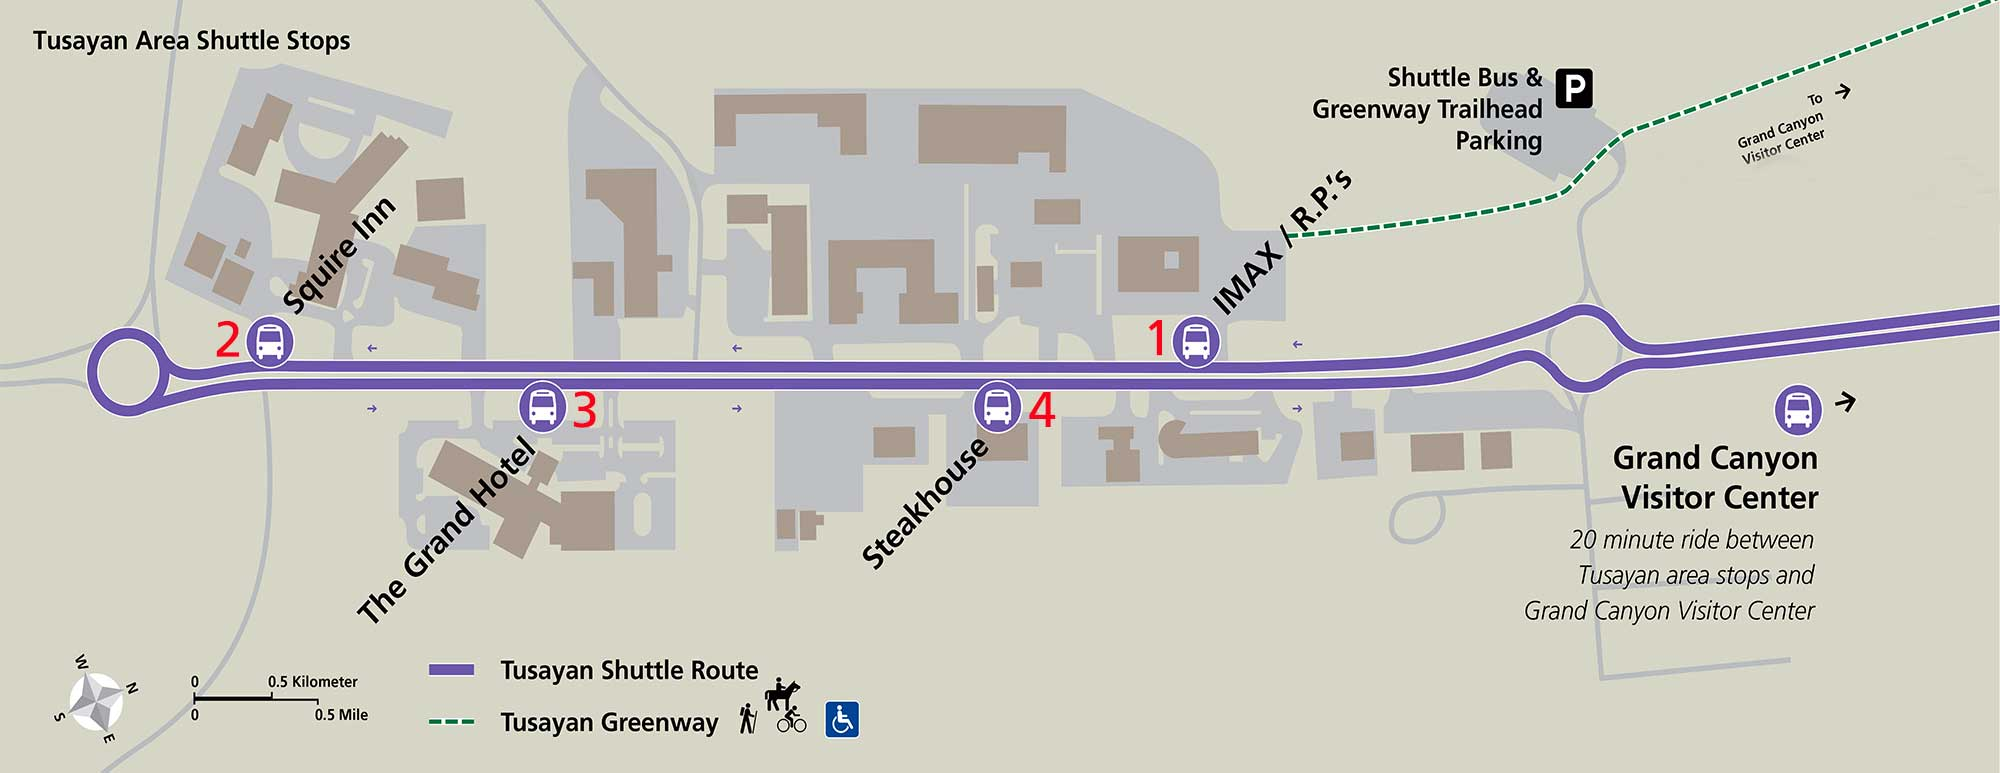 Tusayan Route (Purple) shuttle map shows the four bus stops, buildings shown in brown and parking lots in purple.